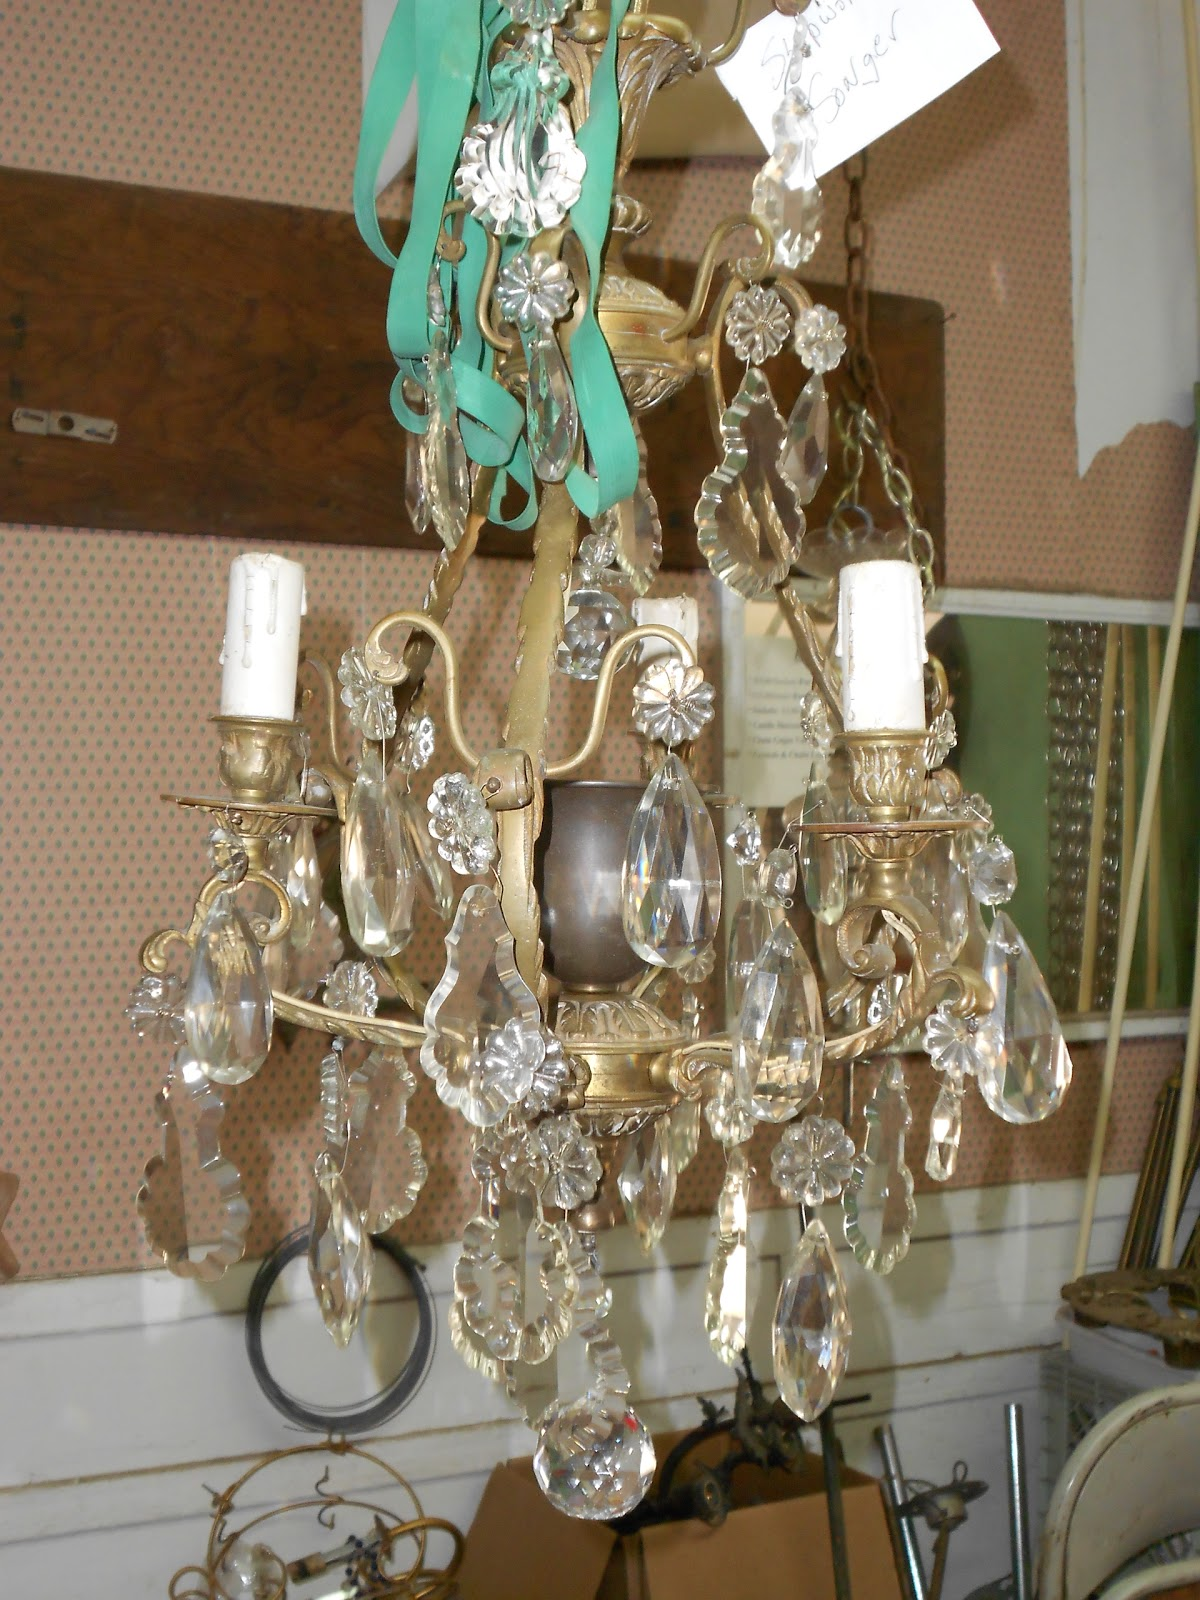 Smallest Of The Two French Chandeliers Needs To Be Rewired And Cleaned